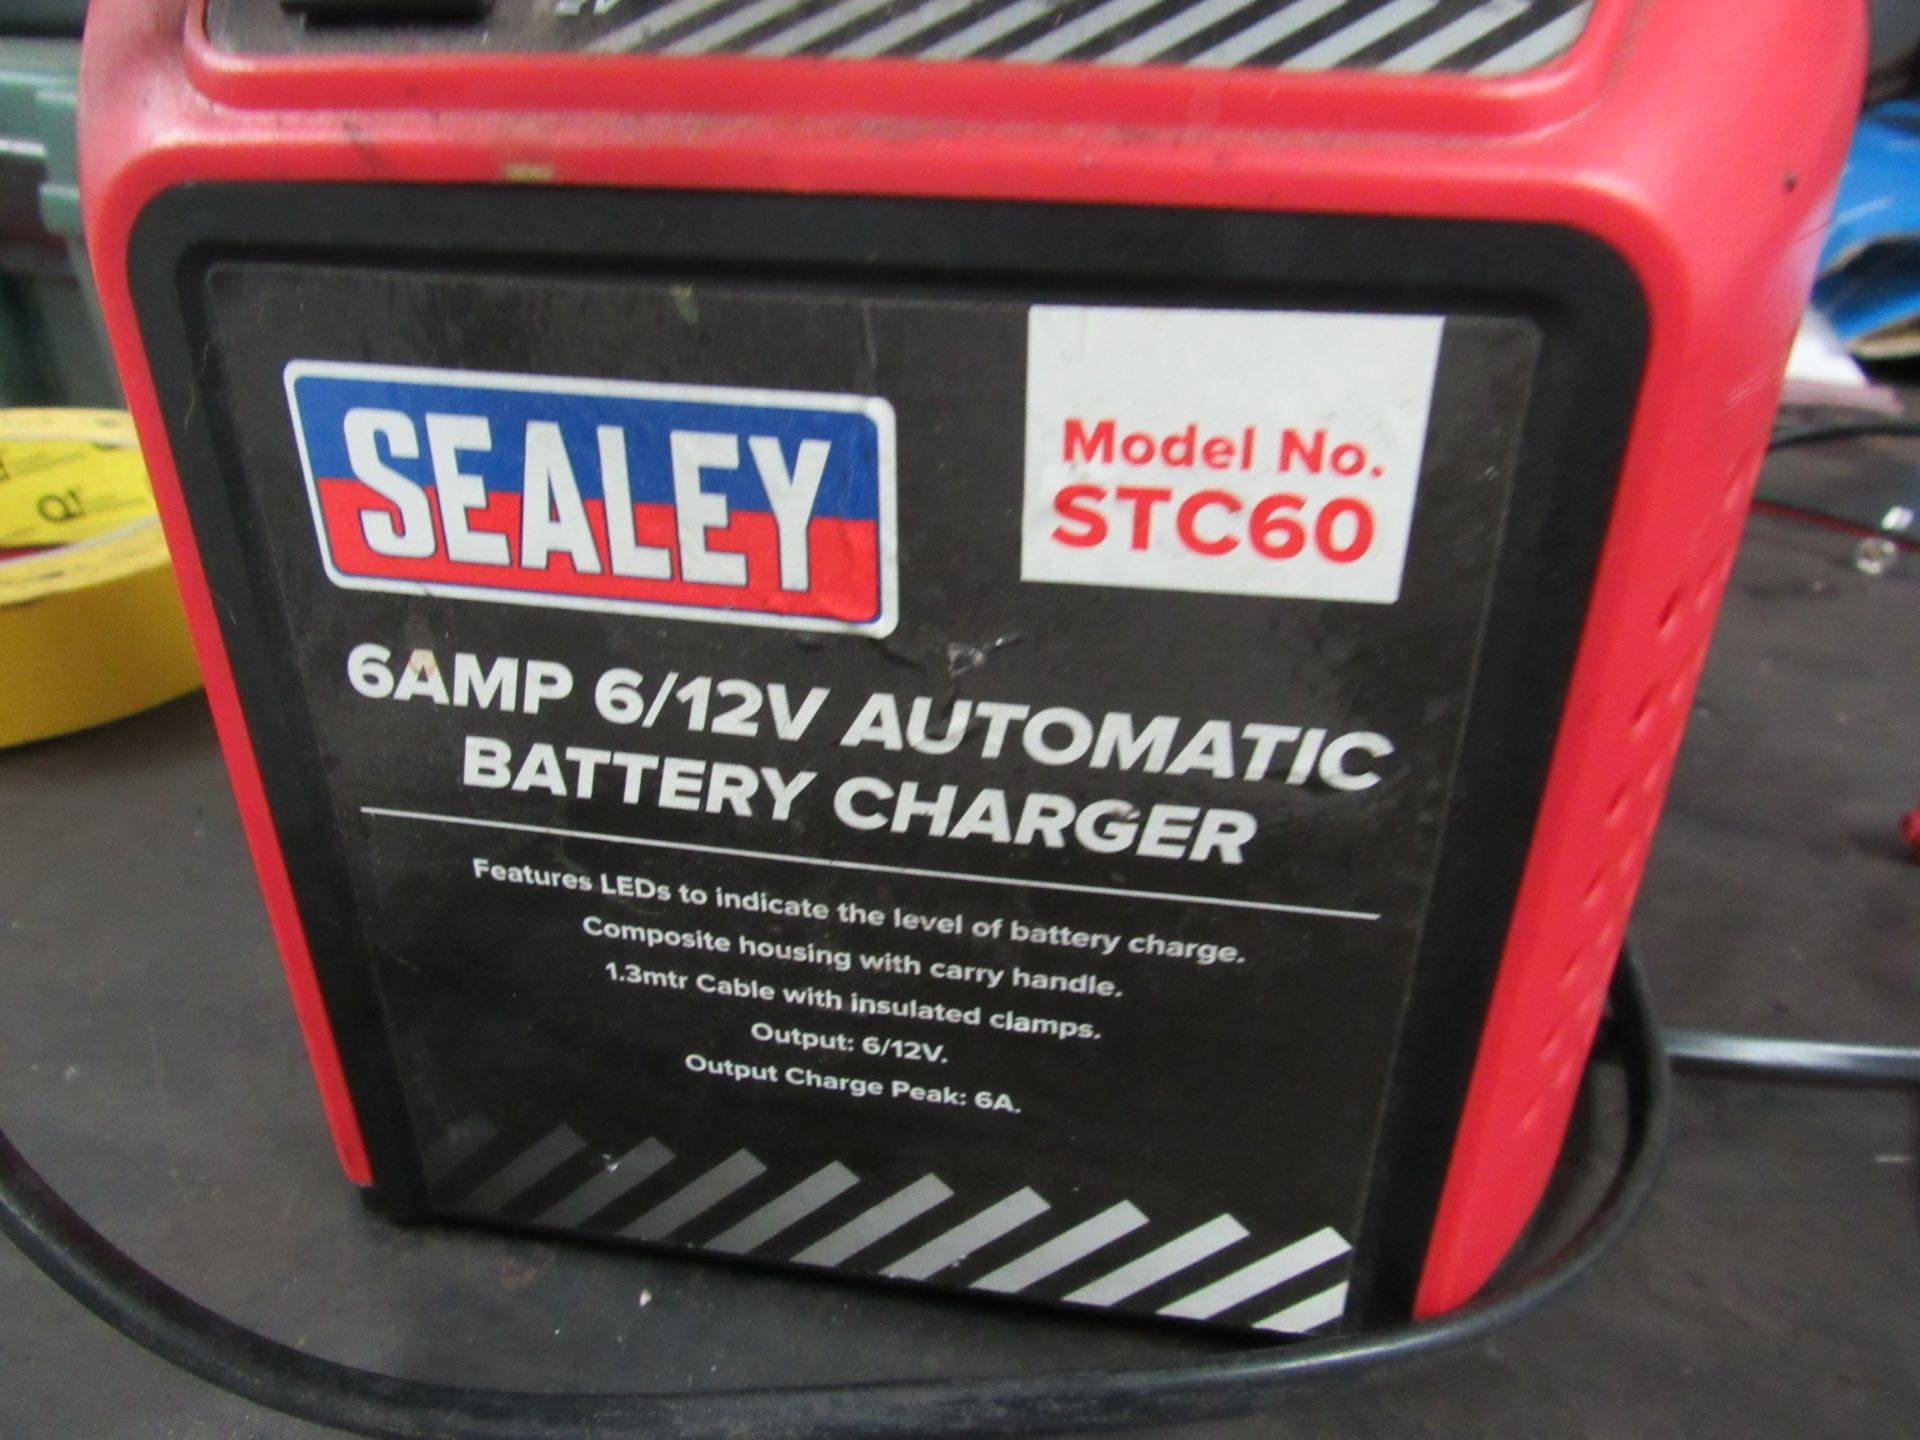 Lot 54 - Sealey STC60 6AMP 6/12v Automatic Battery Charger (Located at Unit 11)